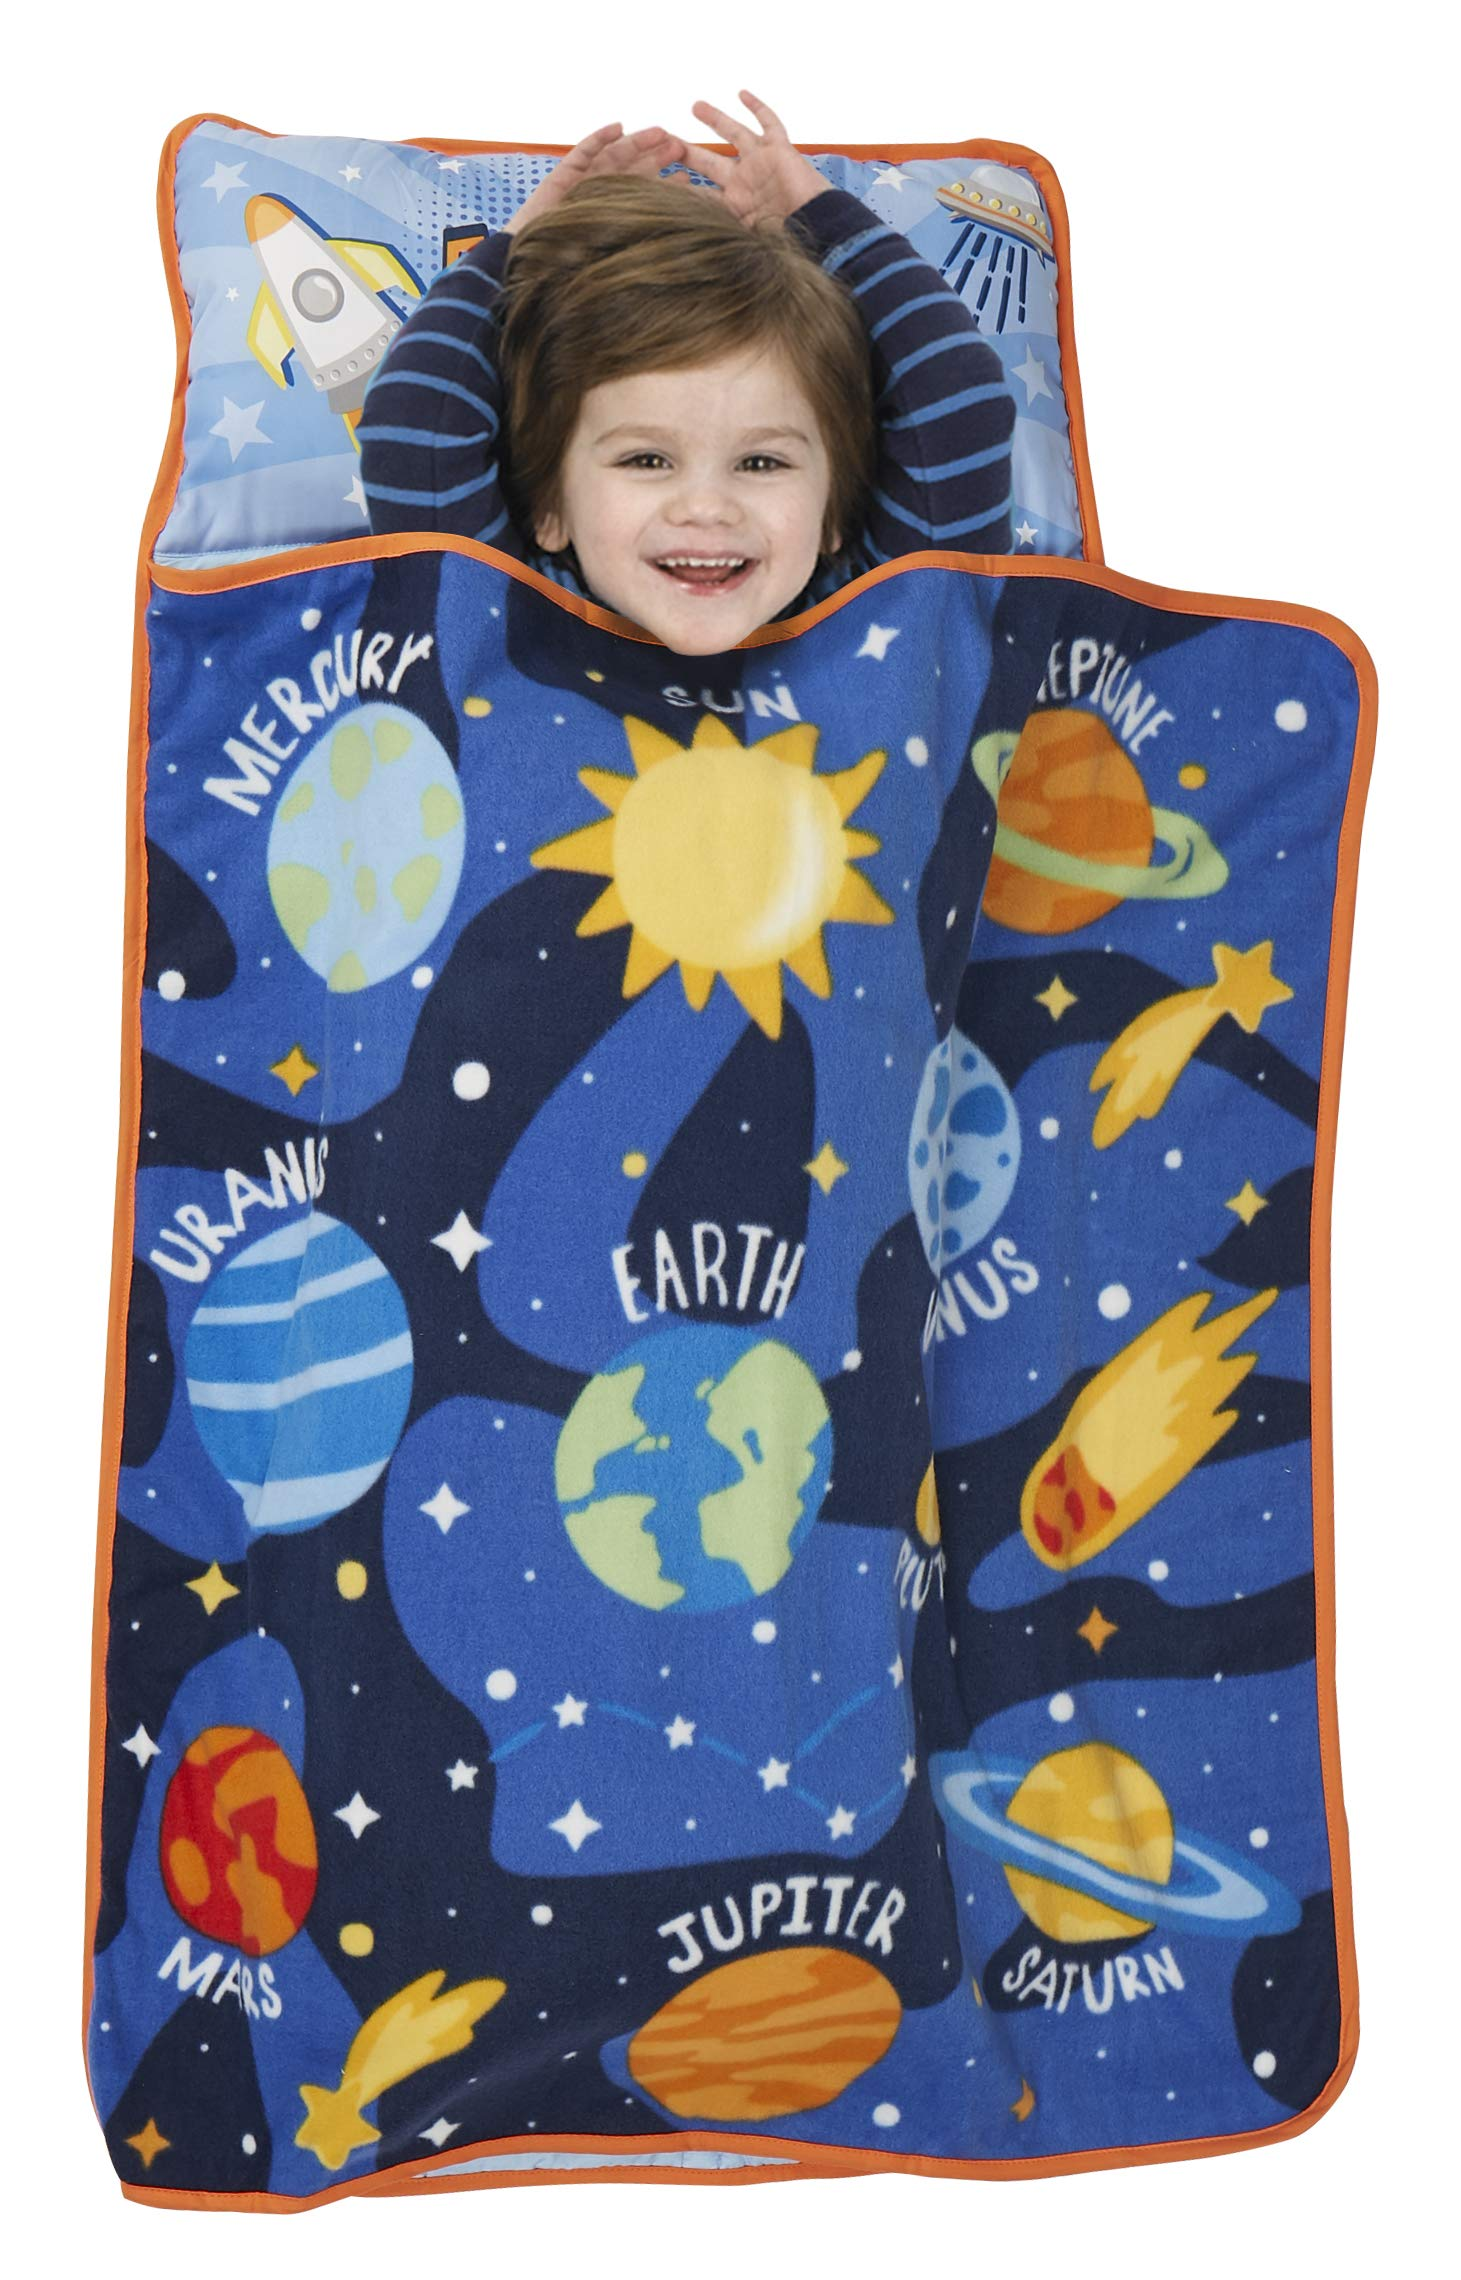 Baby Boom Explore Planets & Outer Space - Kids Nap Mat Set - Includes Pillow and Fleece Blanket - Great for Kids Sleeping at Daycare, Preschool, or Kindergarten - Fits Napping Toddlers or Children by Baby Boom